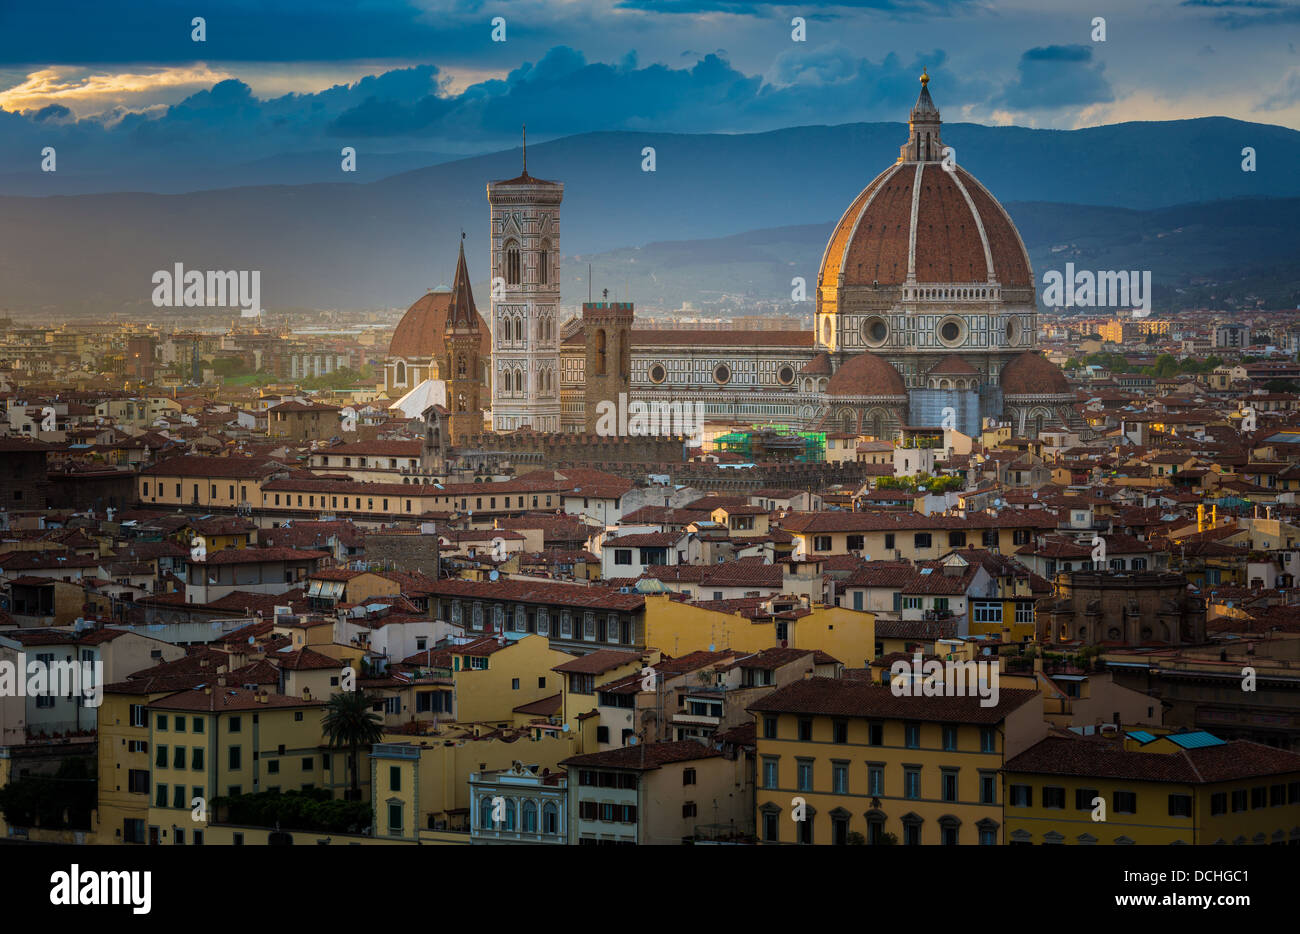 Sunset from Piazzale Michelangelo in Firenze (Florence), Italy - Stock Image